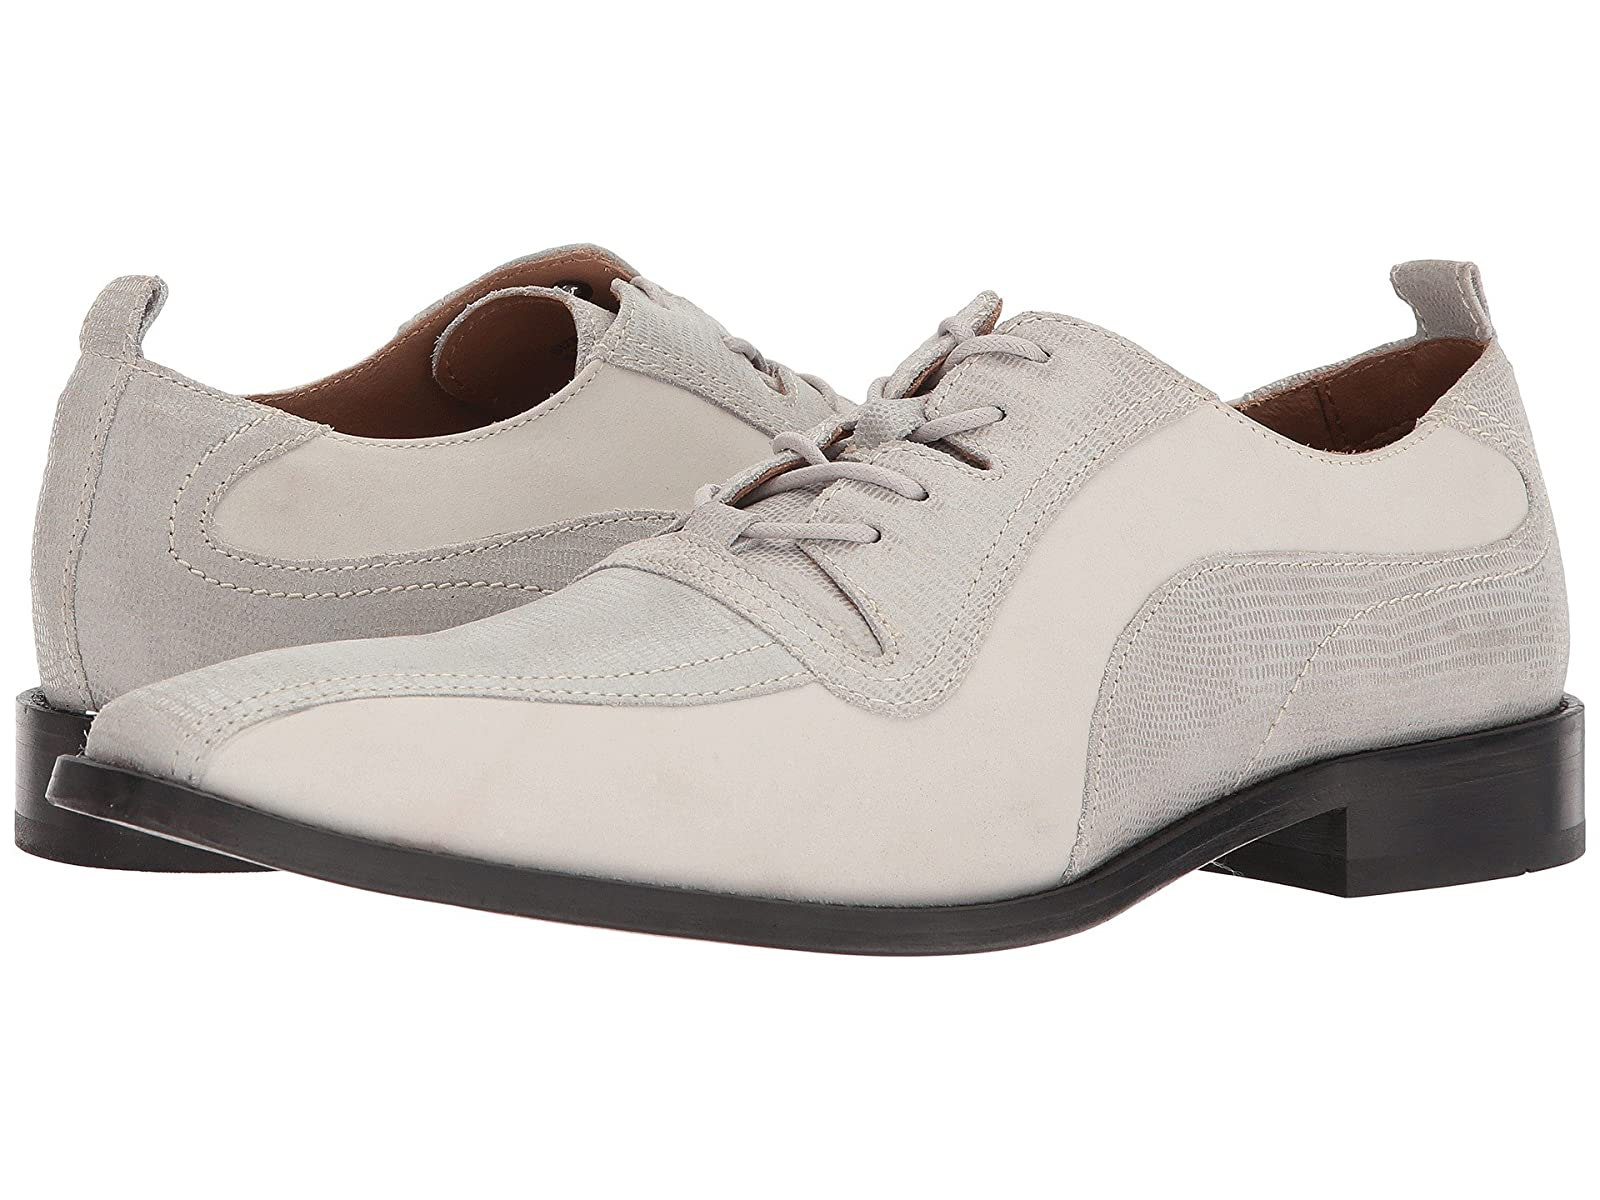 Giorgio Brutini GlosterAtmospheric grades have affordable shoes